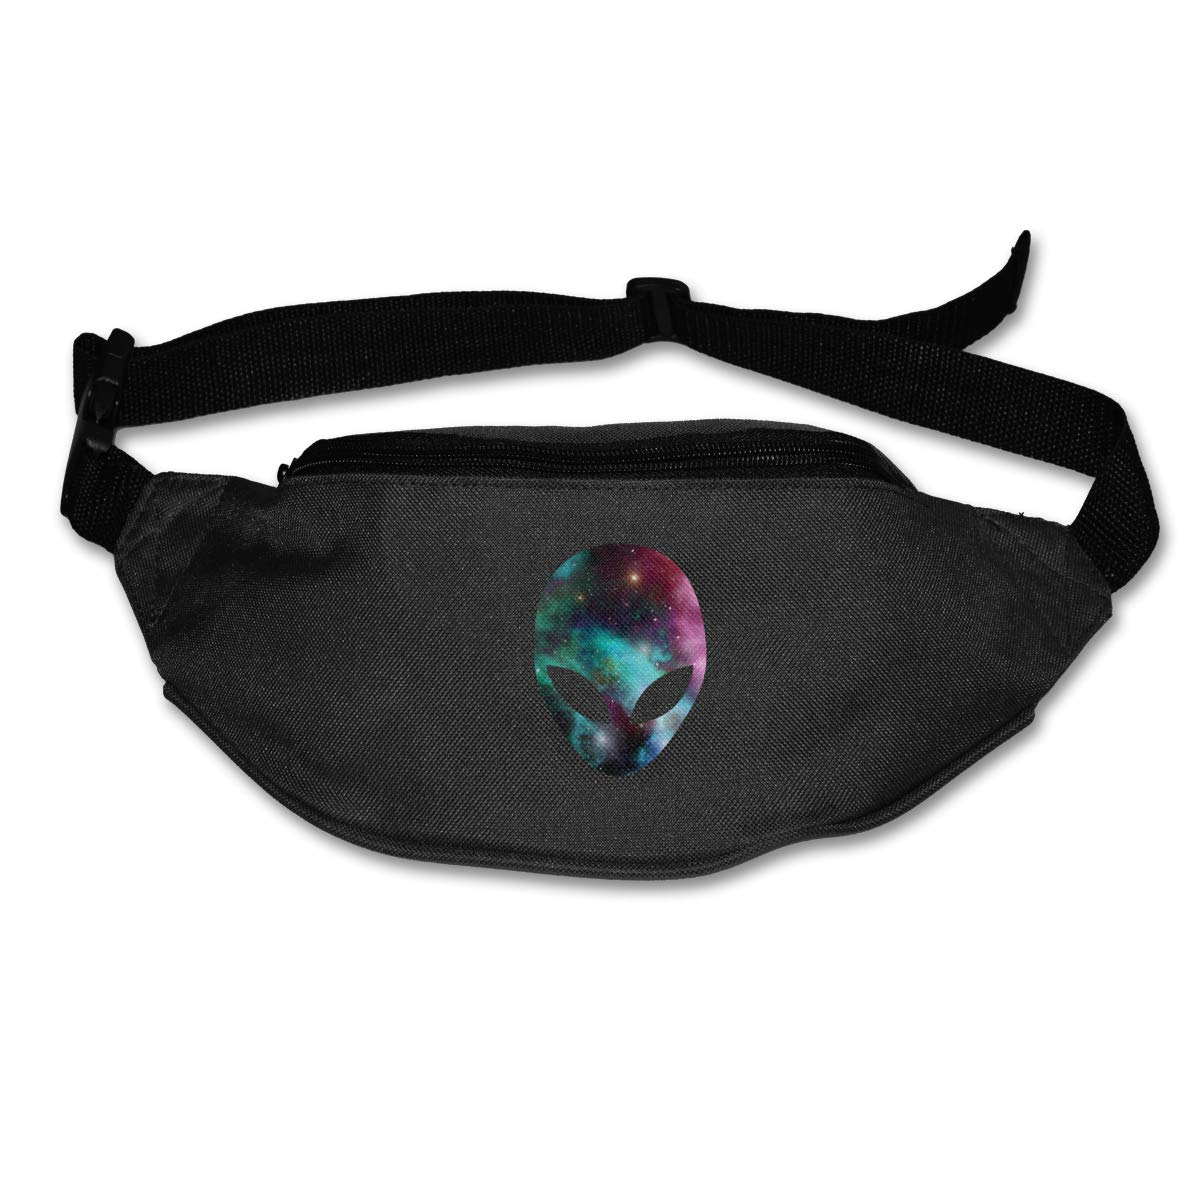 Space Alien Head Colorful Sport Waist Bag Fanny Pack Adjustable For Travel